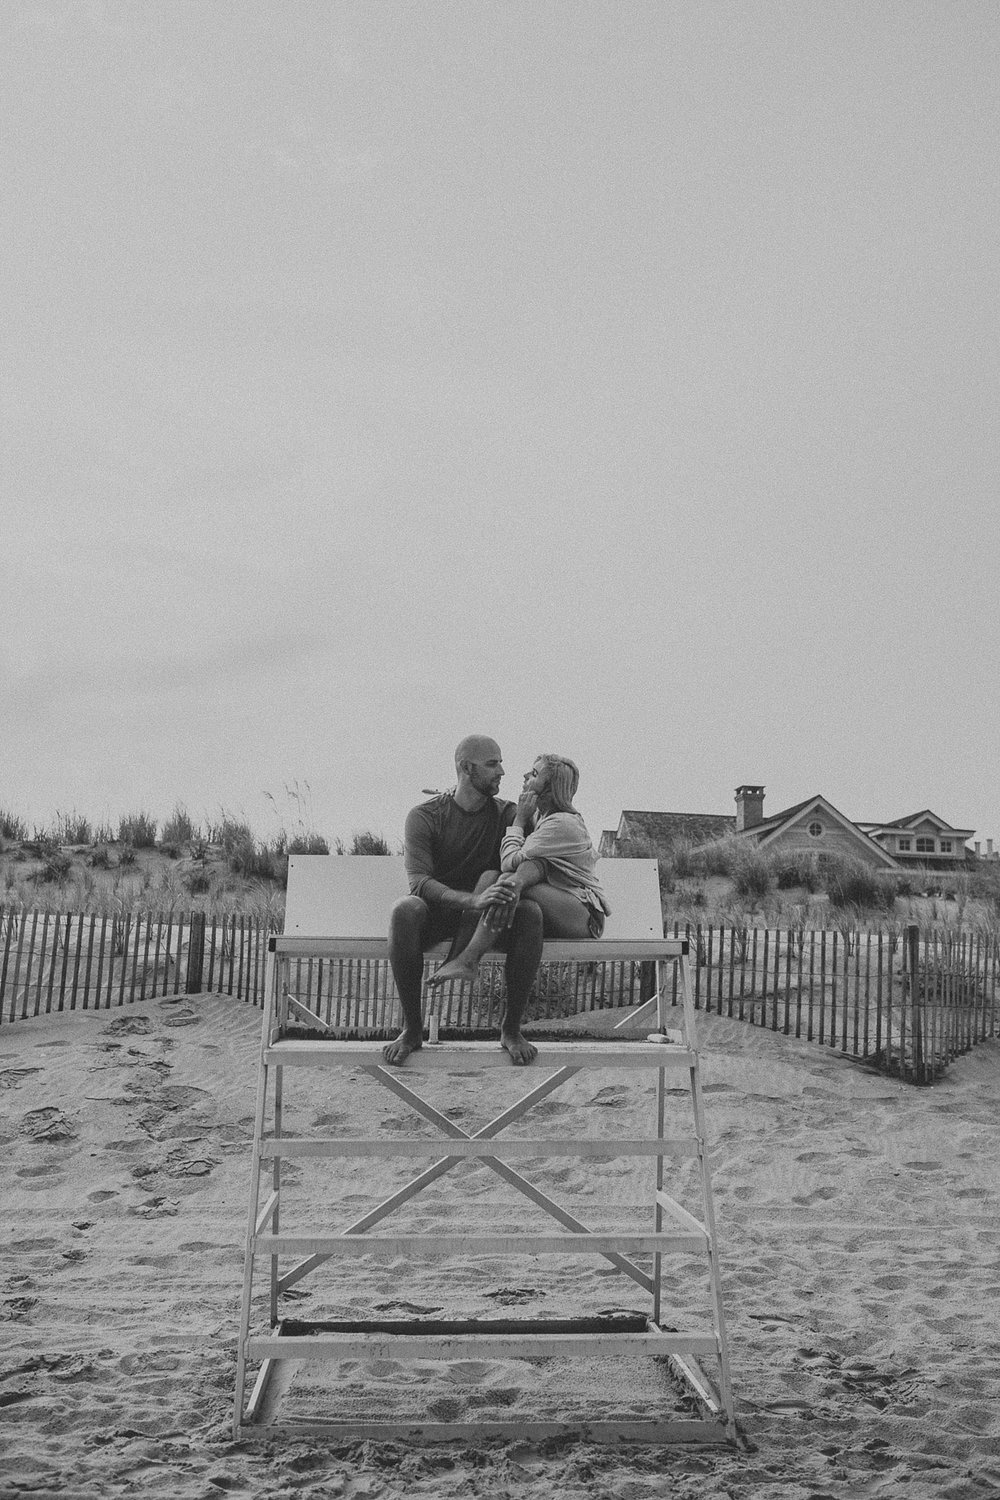 Engagement photos on lifeguard stand in Stone Harbor beach